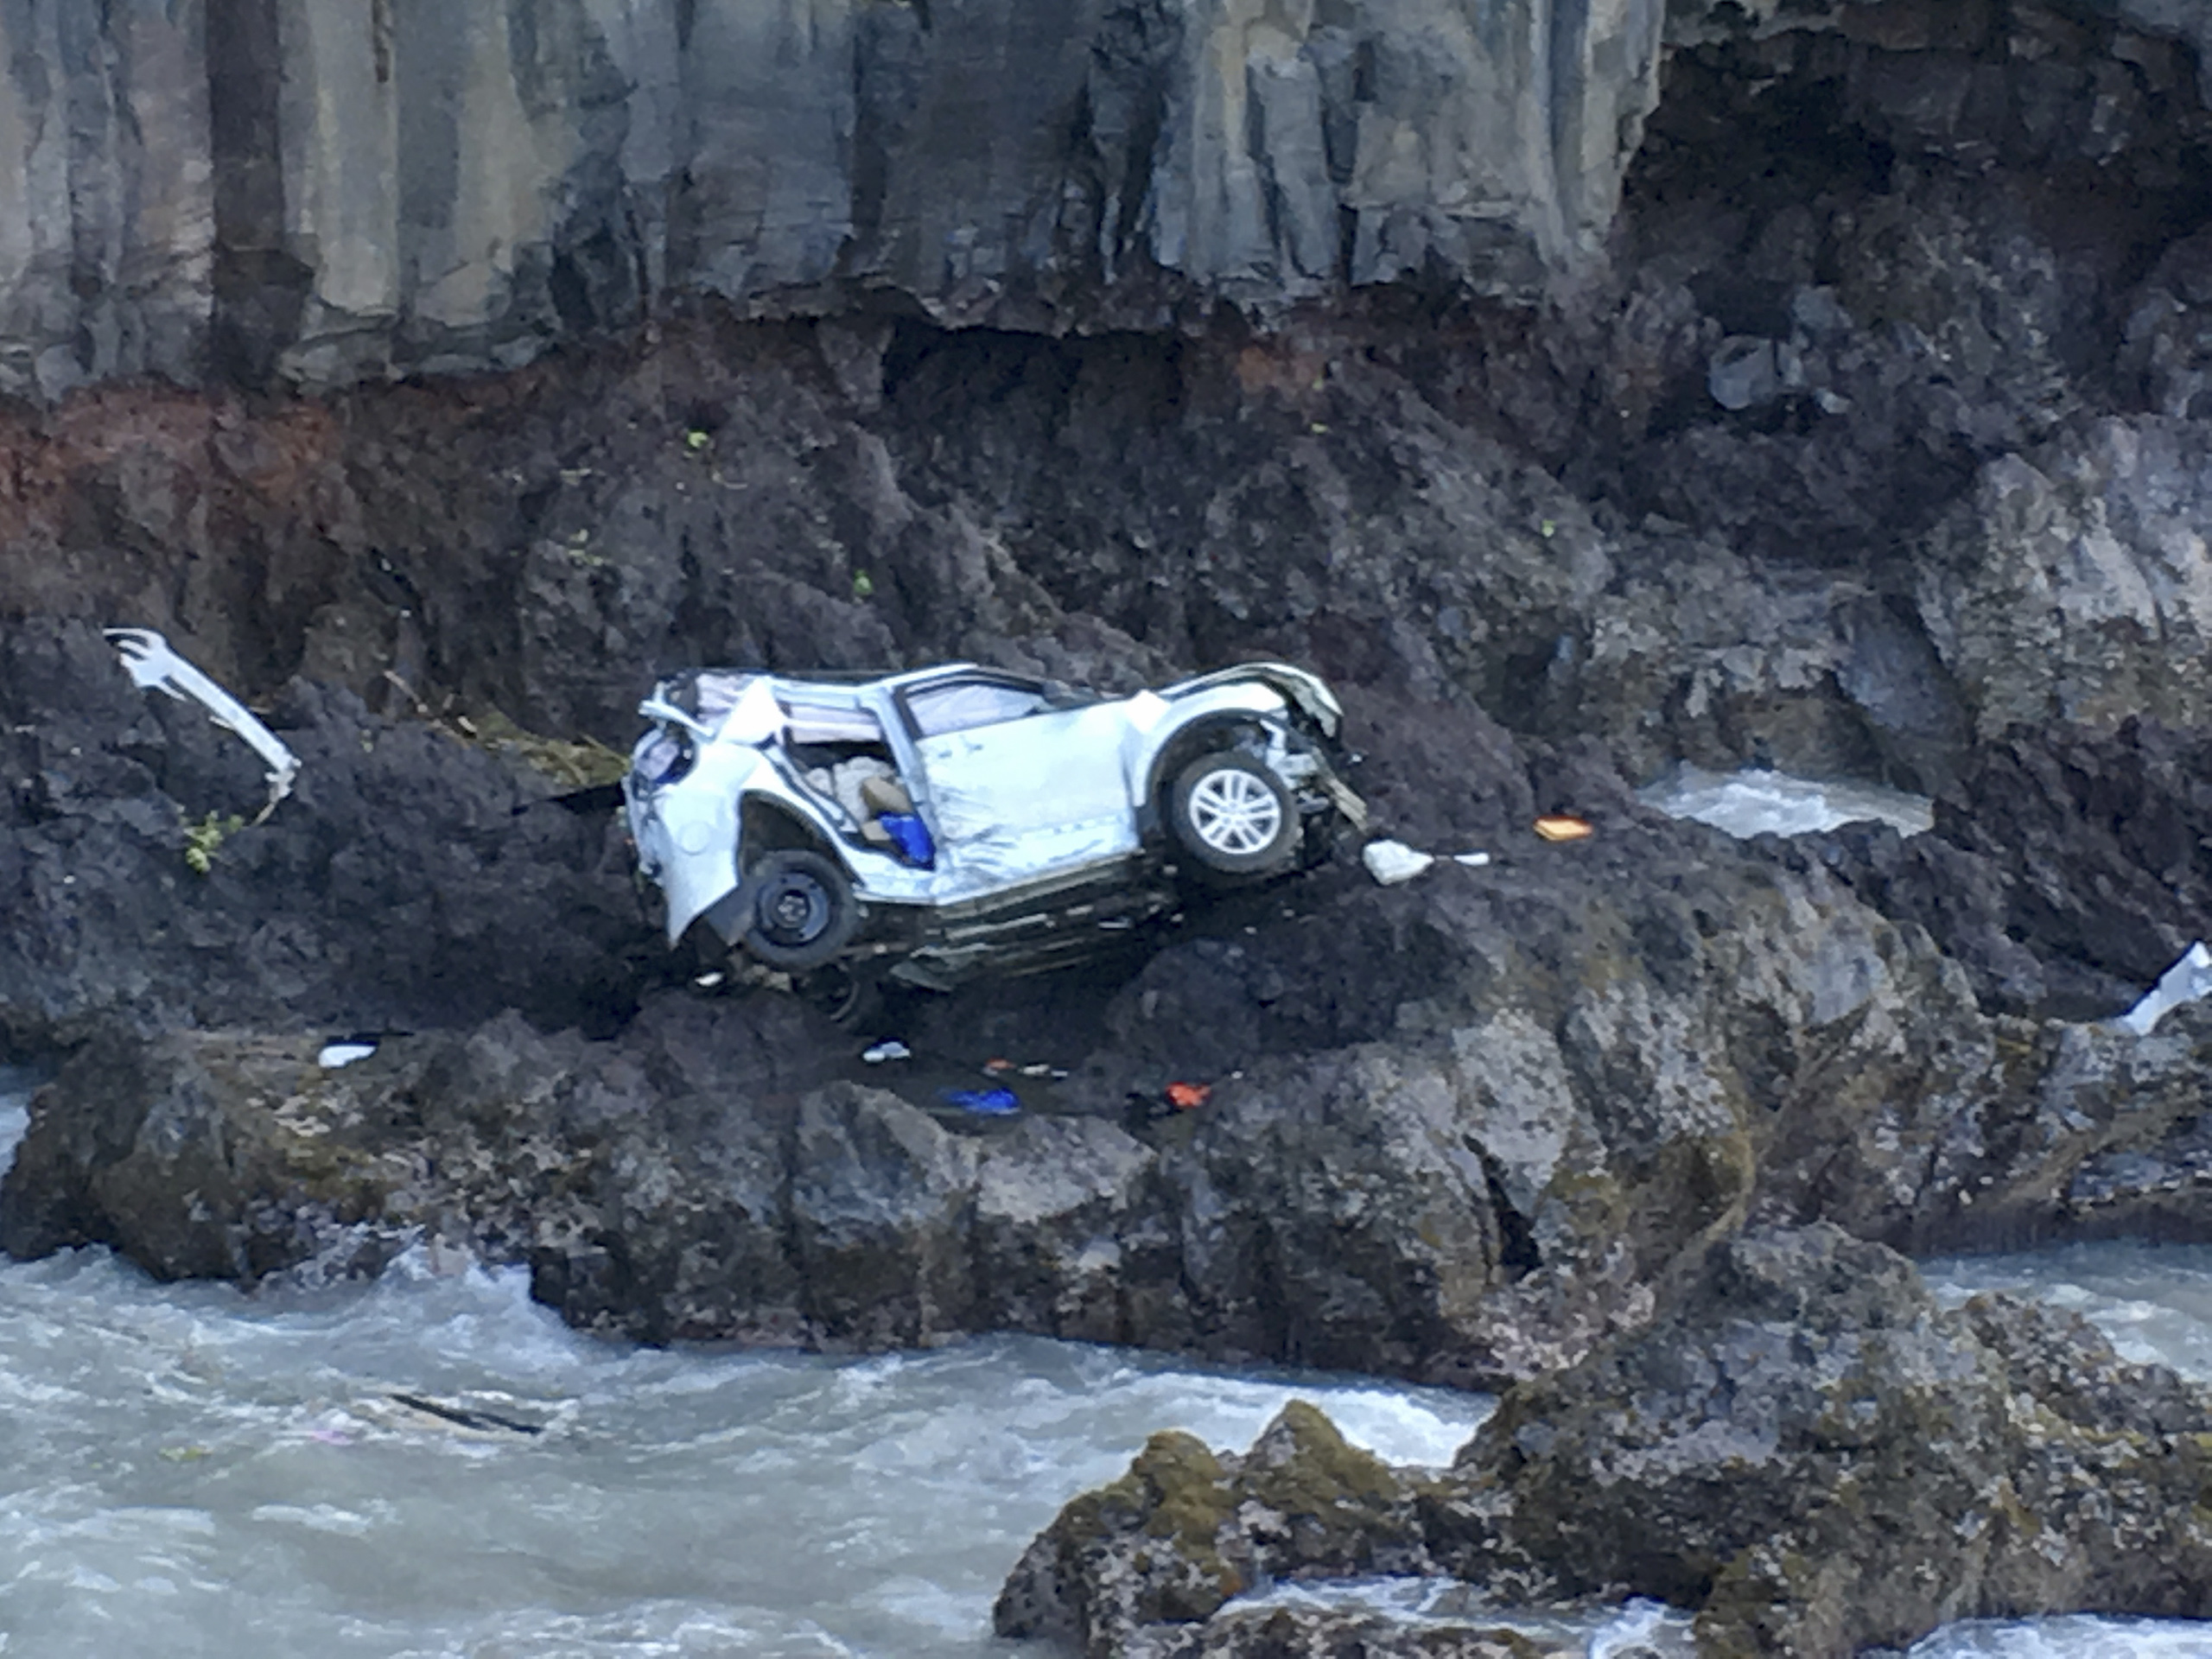 In this May 29, 2016, photo provided by Tom Johnson, a vehicle sits at the bottom of a cliff off Maui's Hana Highway in Hana, Hawaii. Police say the Ford Explorer fell about 200 feet. Prosecutors say Alexandria Duval, who is also known as Alison Dadow, intentionally caused the death of her sister, Anastasia Duval, also known as Ann Dadow.